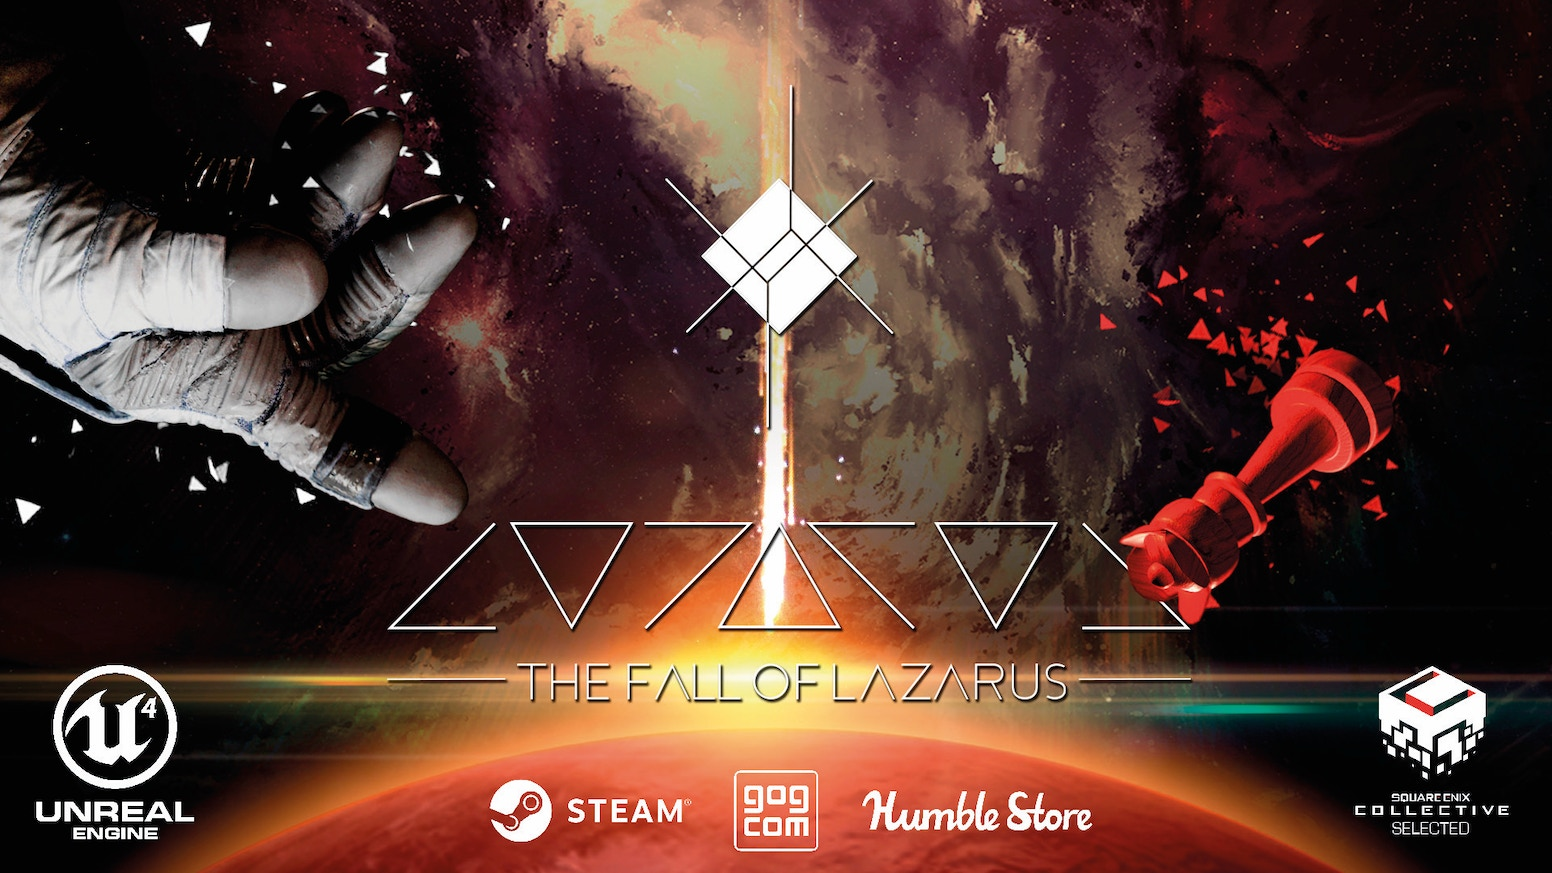 A deeply narrative scifi mystery game based on the exploration of an abandoned cargo spaceship inspired by Firewatch and the film Moon.